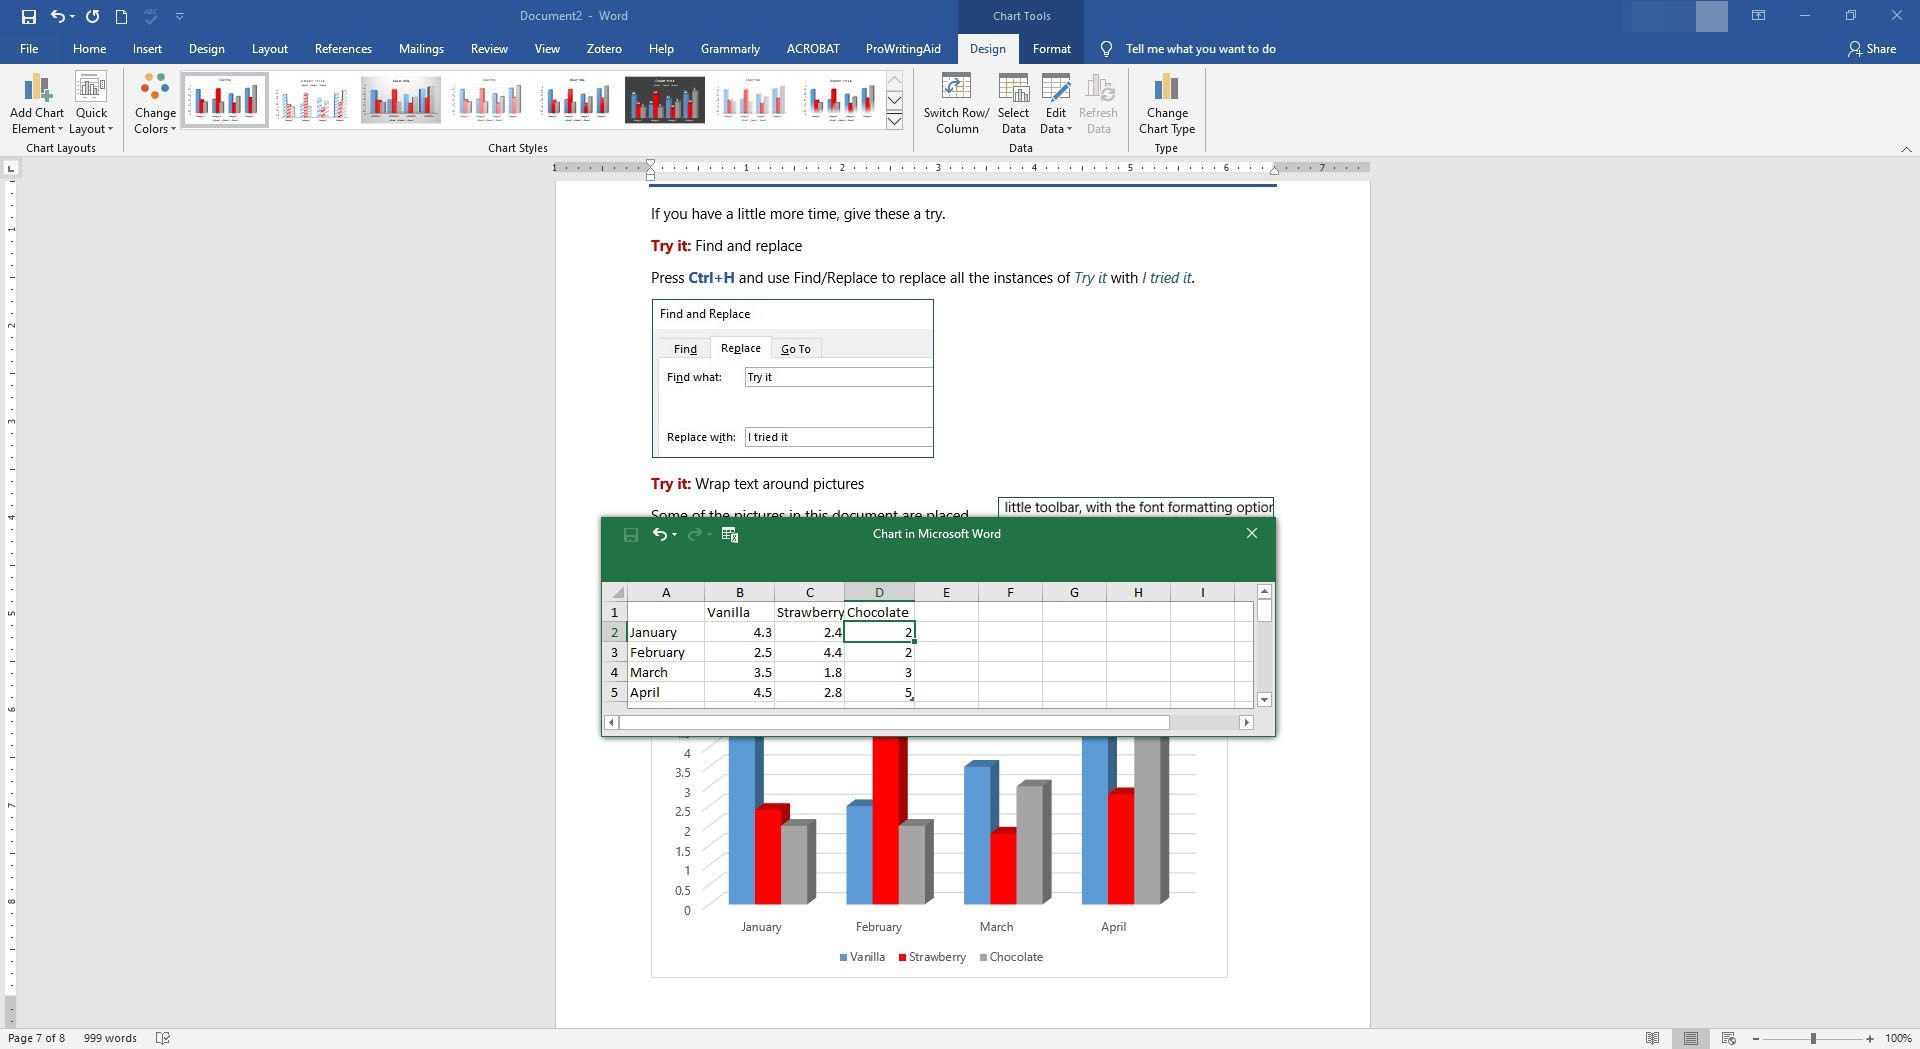 Data has been entered into a chart in Microsoft Word.